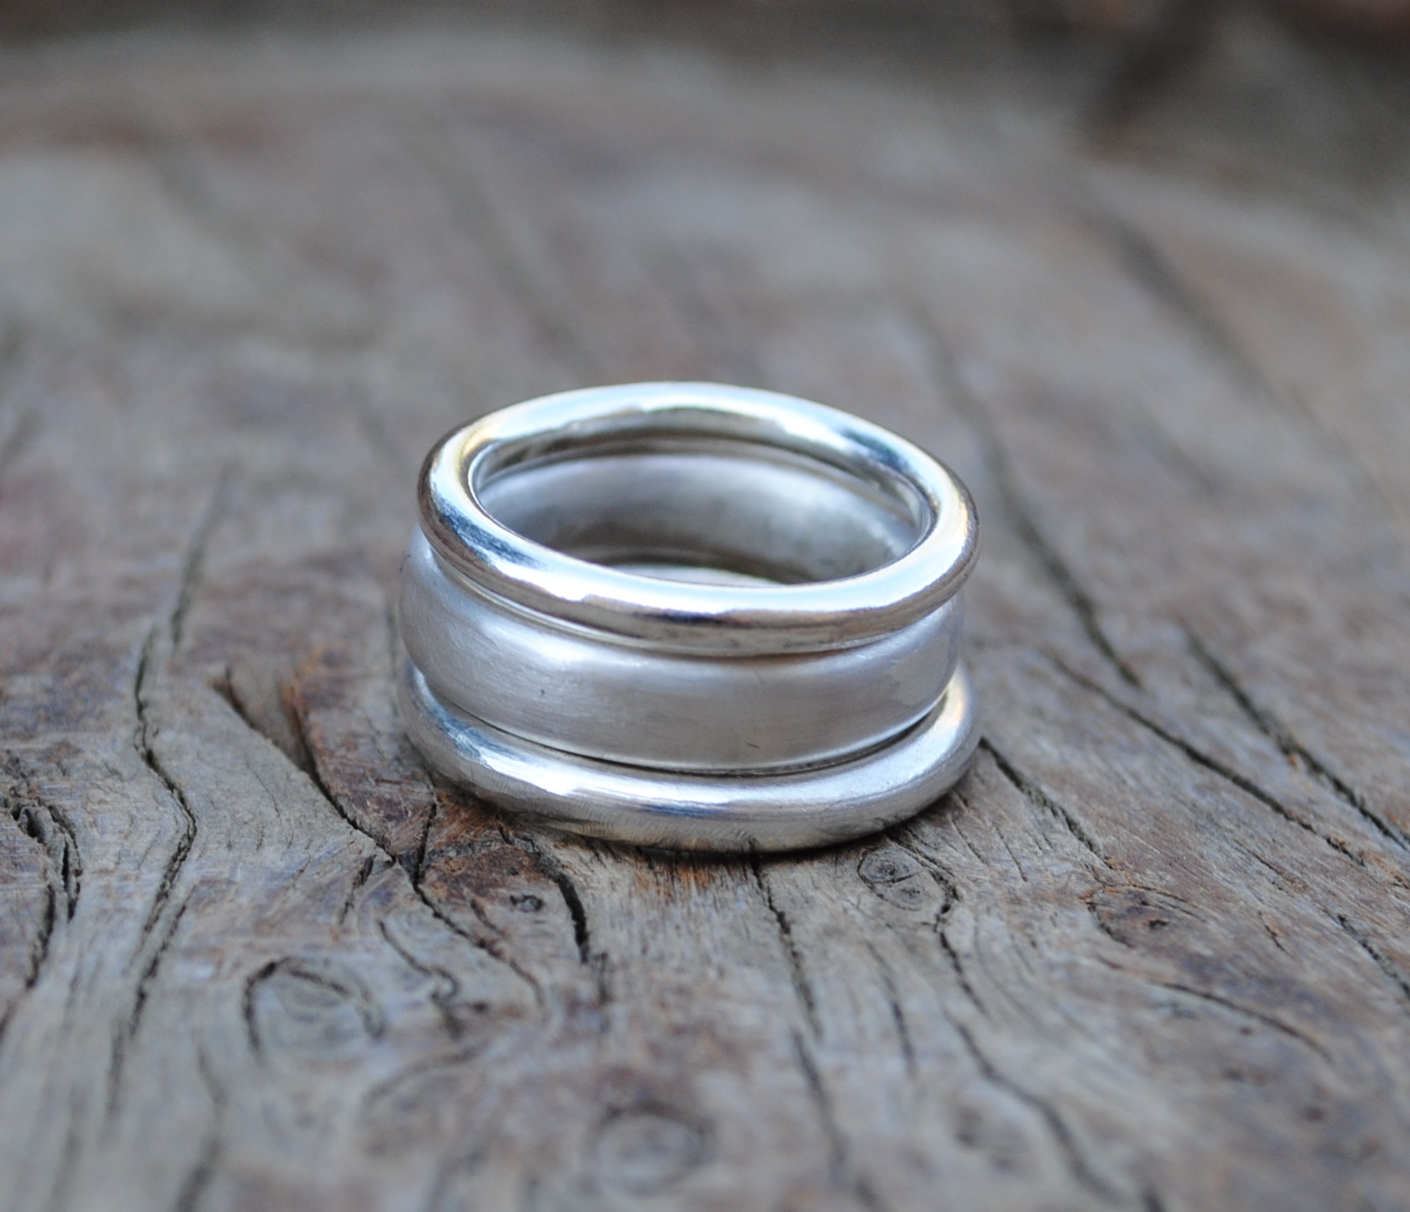 Set of Three Rings £90. (Wire Ring £25, Thicker Wire Ring £30, Oval Wire Ring £35.